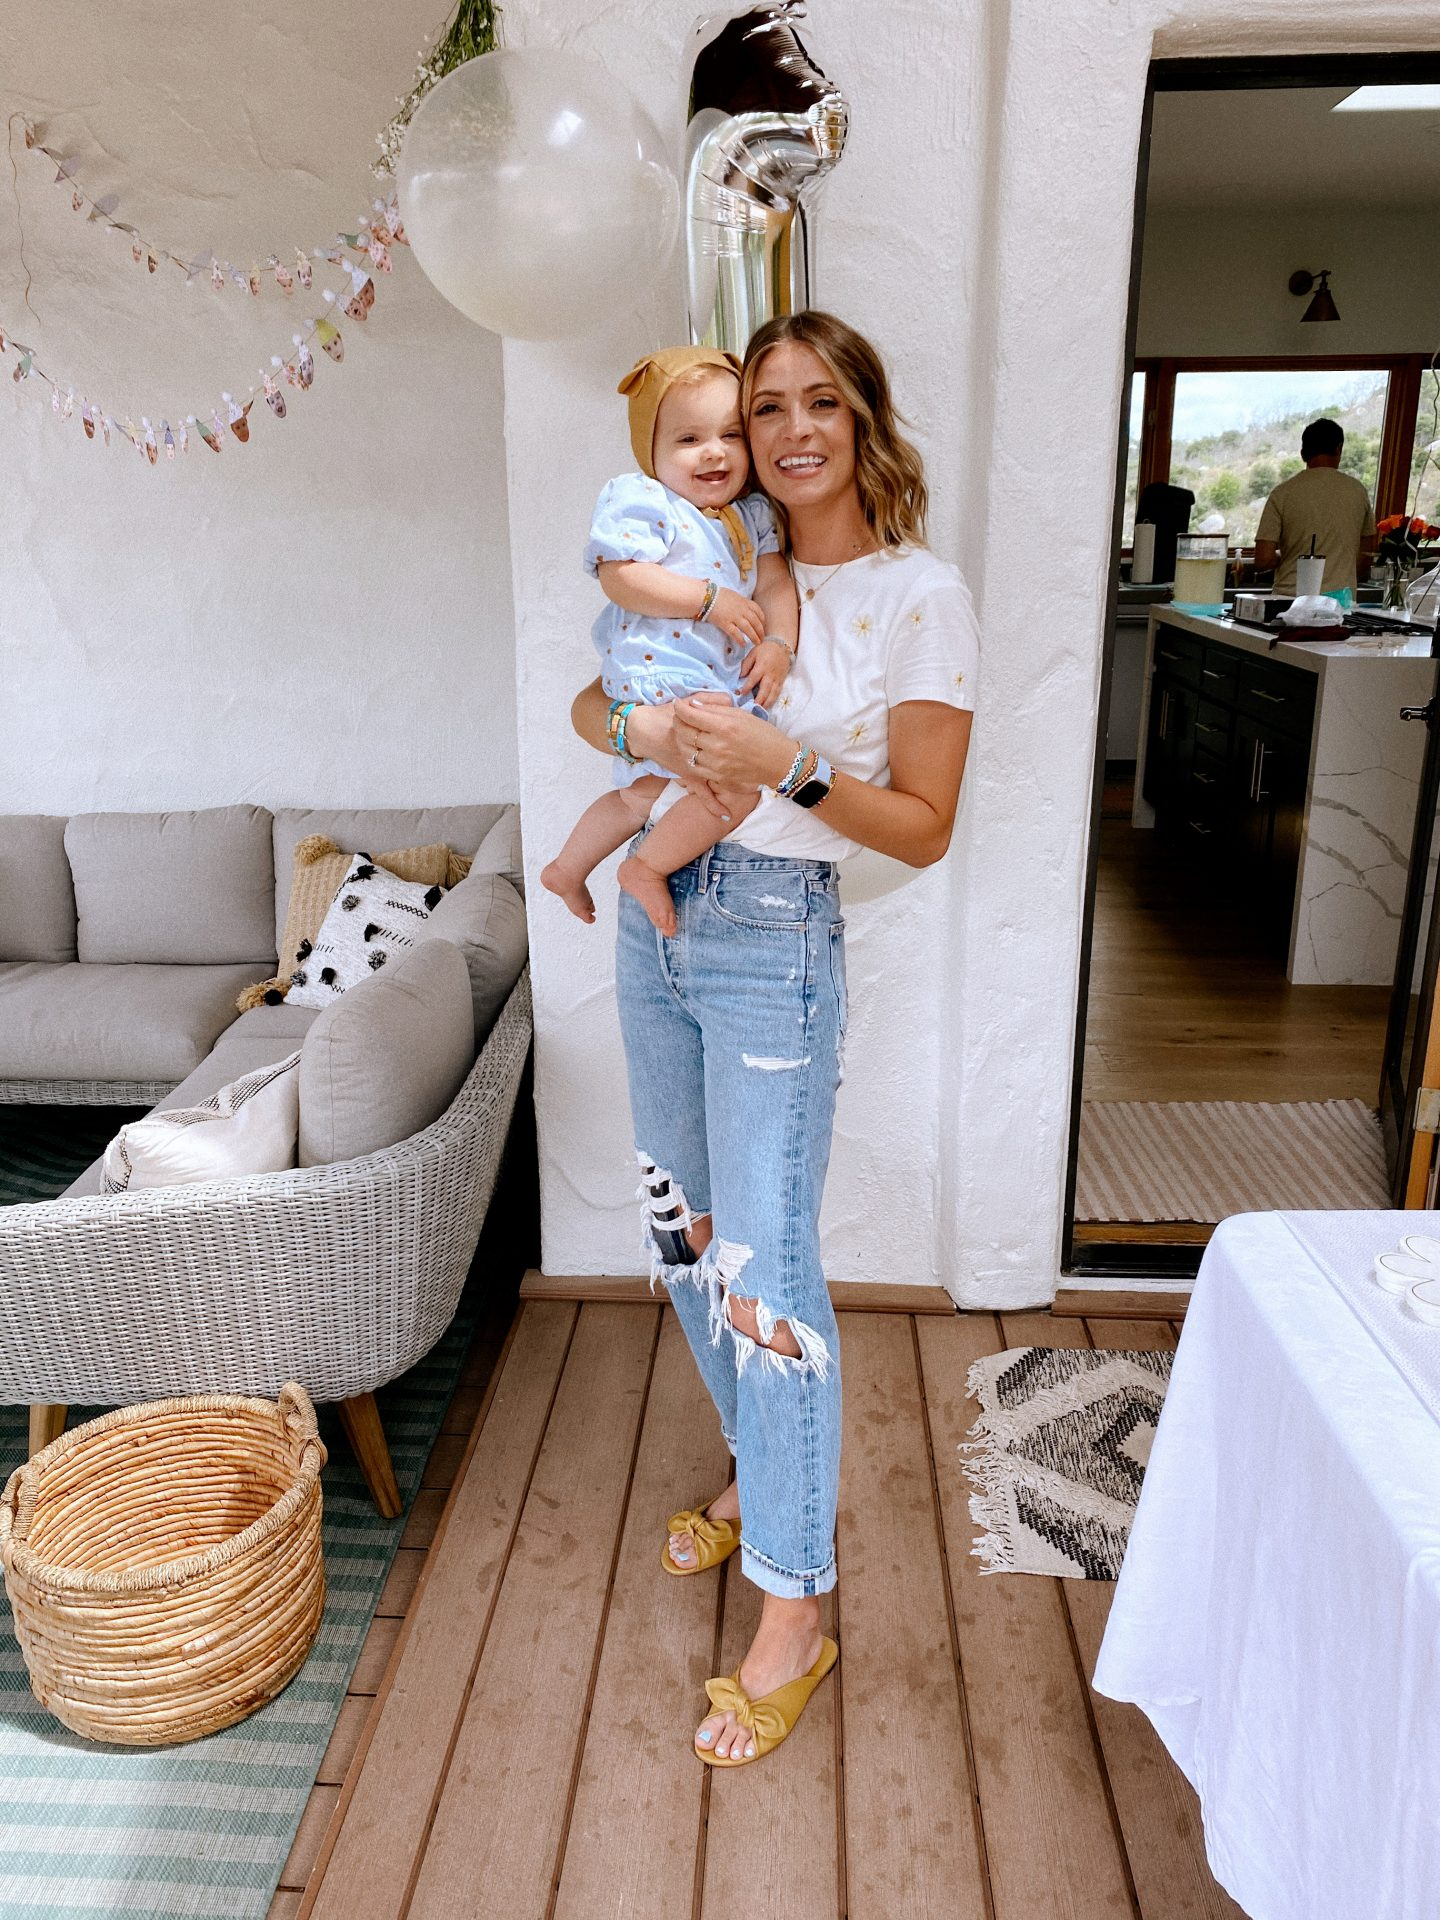 Daisy Theme Party by popular San Diego lifestyle blog, Navy Grace: image of a Mom wearing a Sezane Evan t-shirt, Anthropologie Gemma slides, Agolde Jeans, and Anthropologie stack bracelets holding a one year old baby wearing a blue daisy print Zara dress and Briar Baby Honey Bear bonnet.